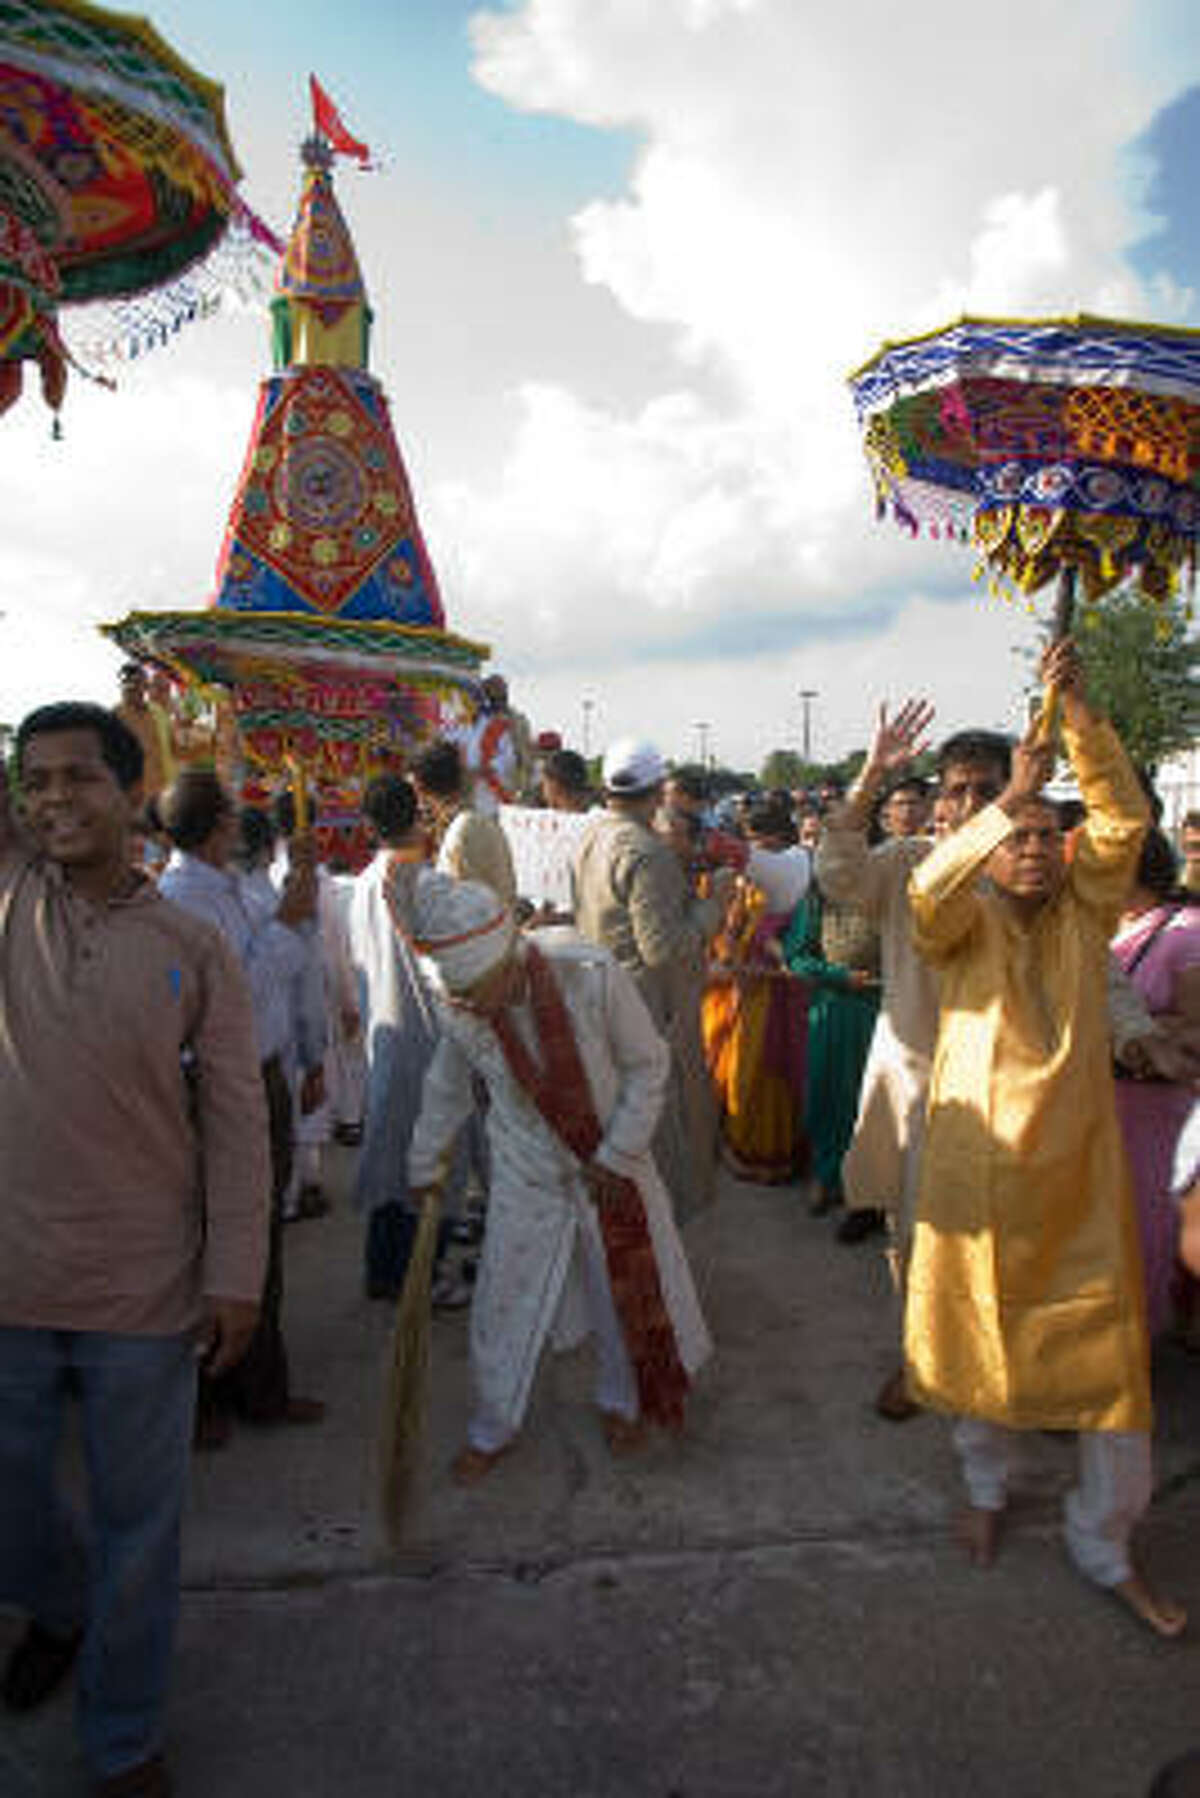 Harish Randwani, playing the Raja of Puri, sweeps the path of the chariot. This part of the ceremony symbolizes the subjugation of earthly authority to that of the Divine.